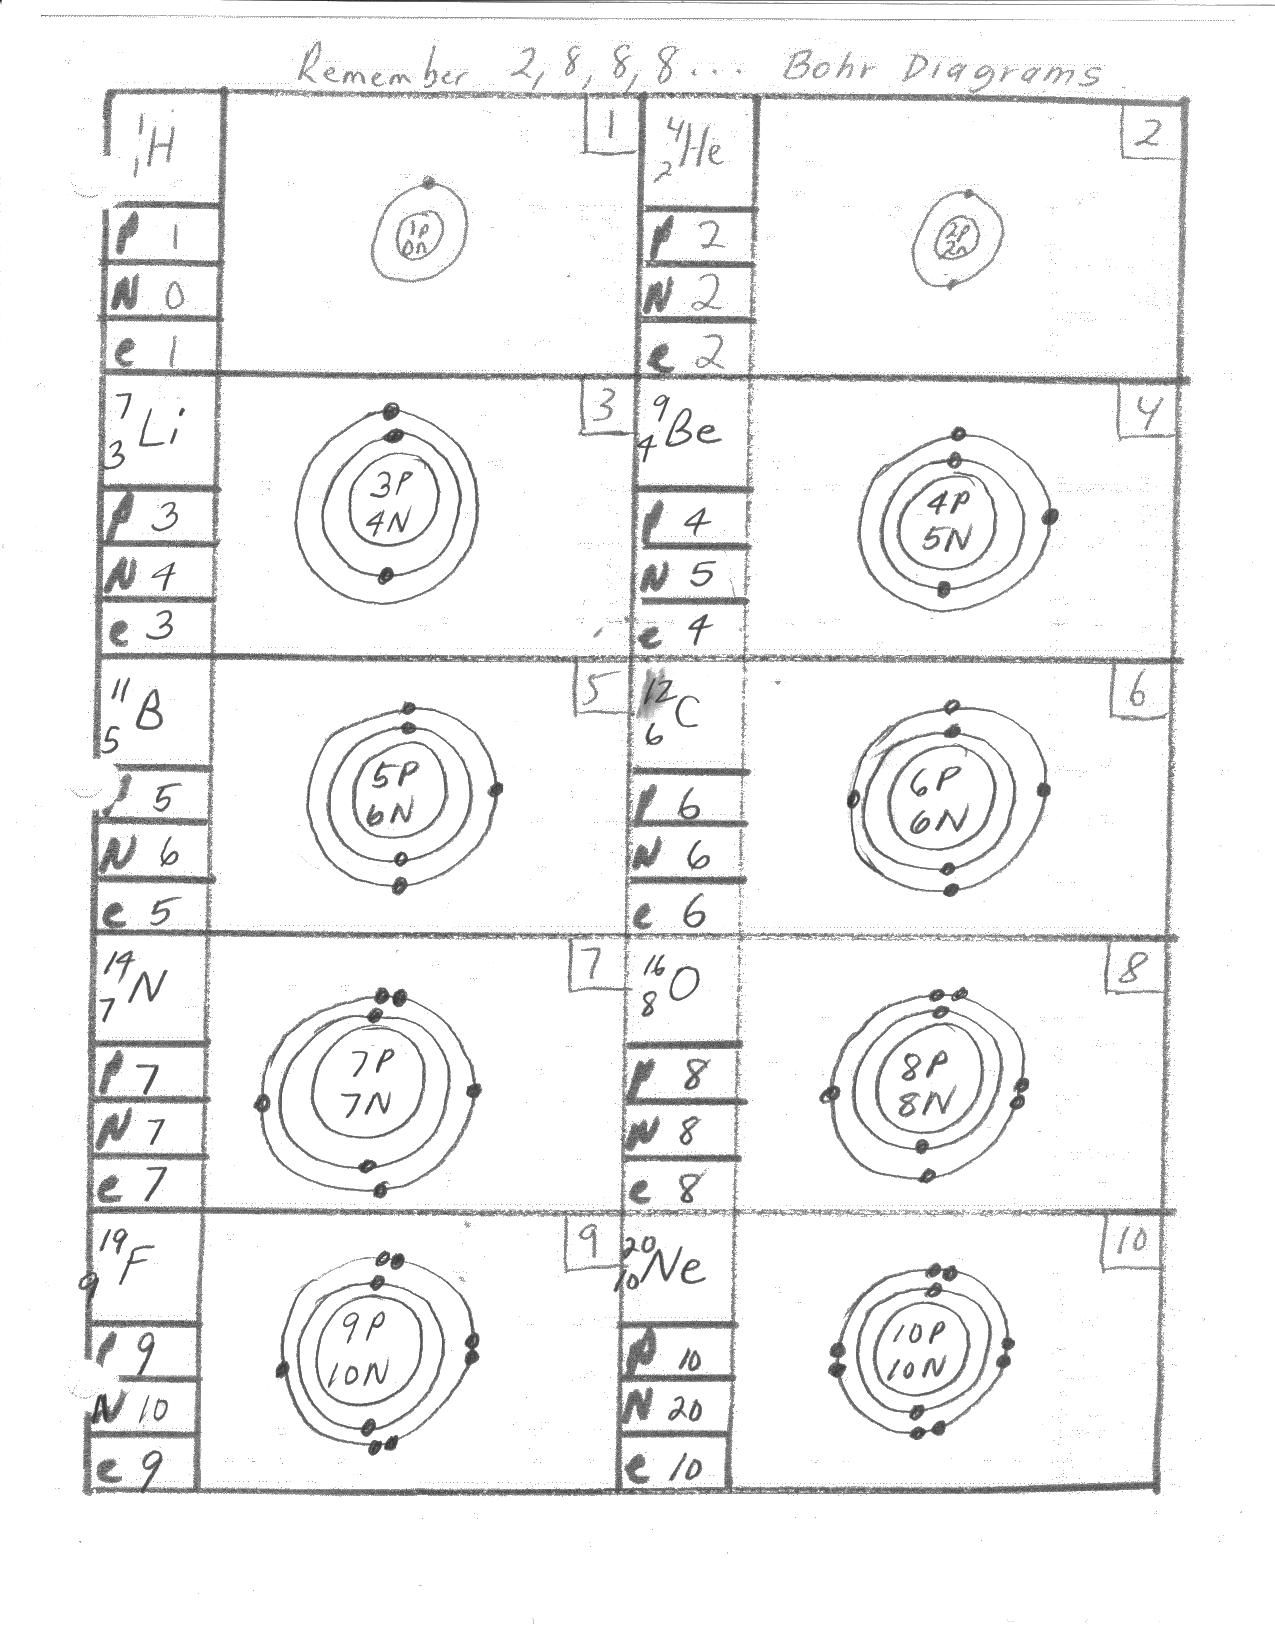 Marvelous Bohr Rutherford Diagrams 1 10 11 20 . 1.14 Chemical Formulas